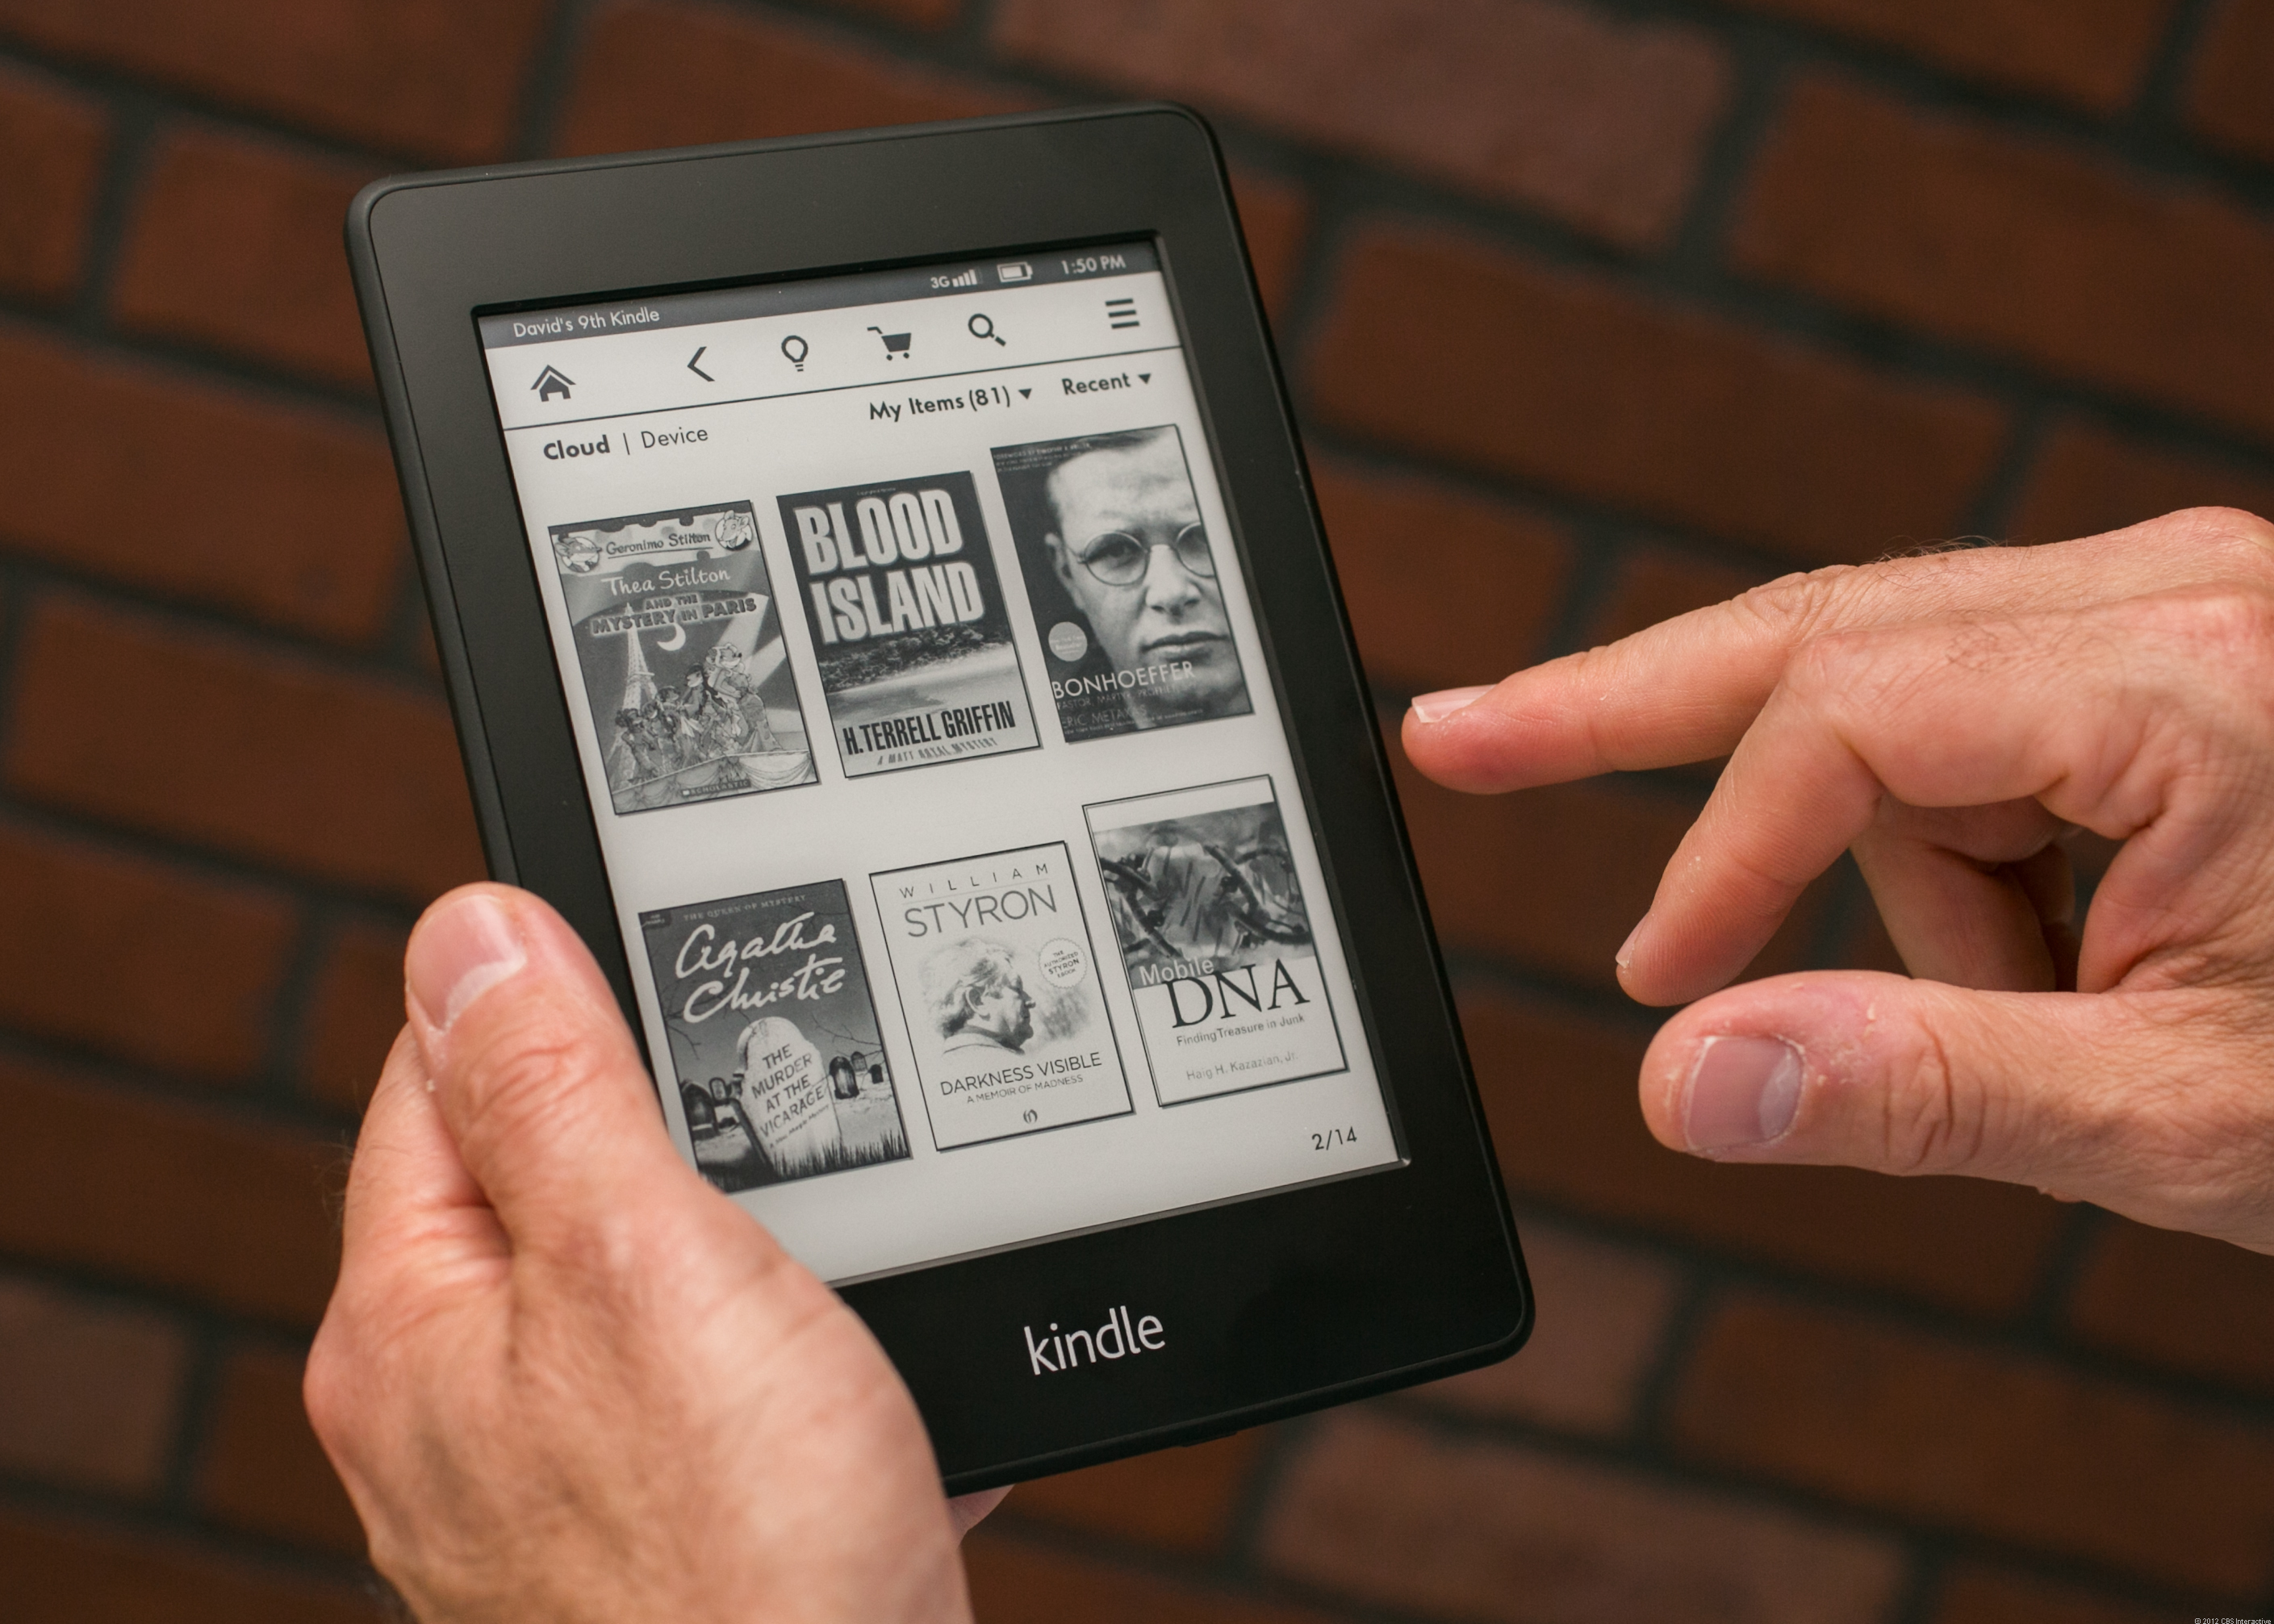 Kindle_Paperwhite_35438287_35437744_35438313_35438312_10.jpg